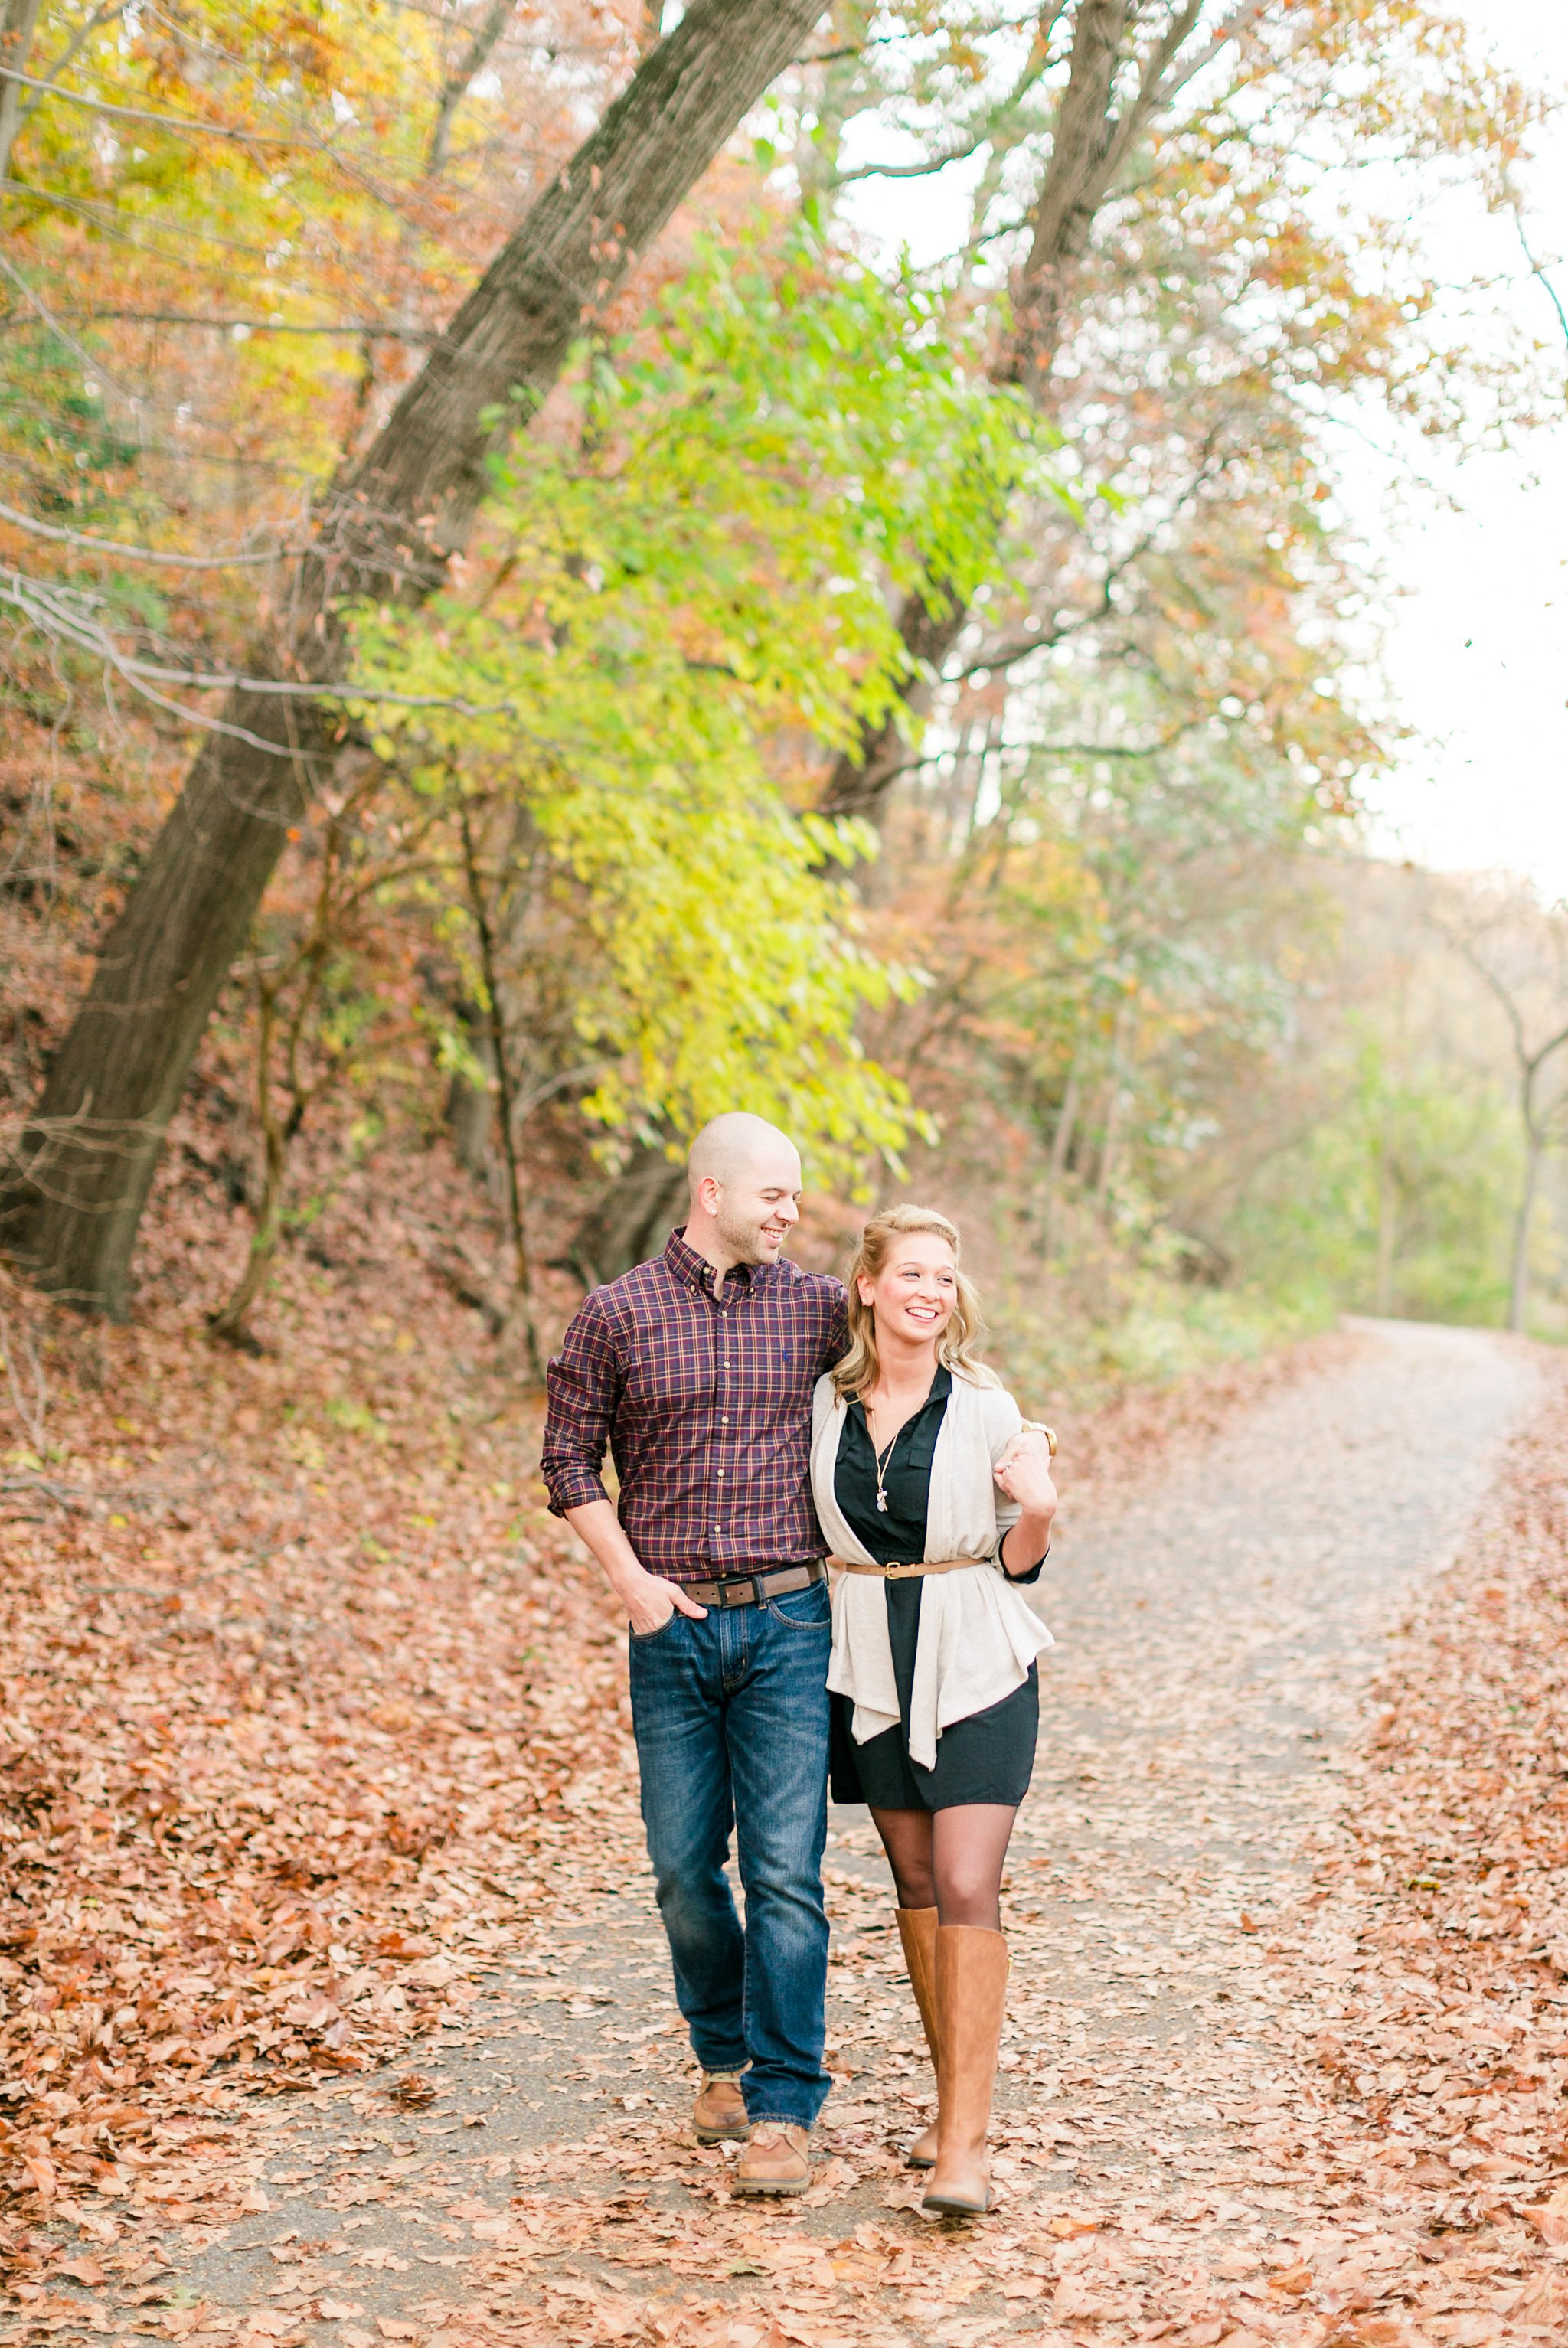 Rock Creek Park Engagement Photos DC Wedding Photographer Megan Kelsey Photography Katie & Conor-161.jpg